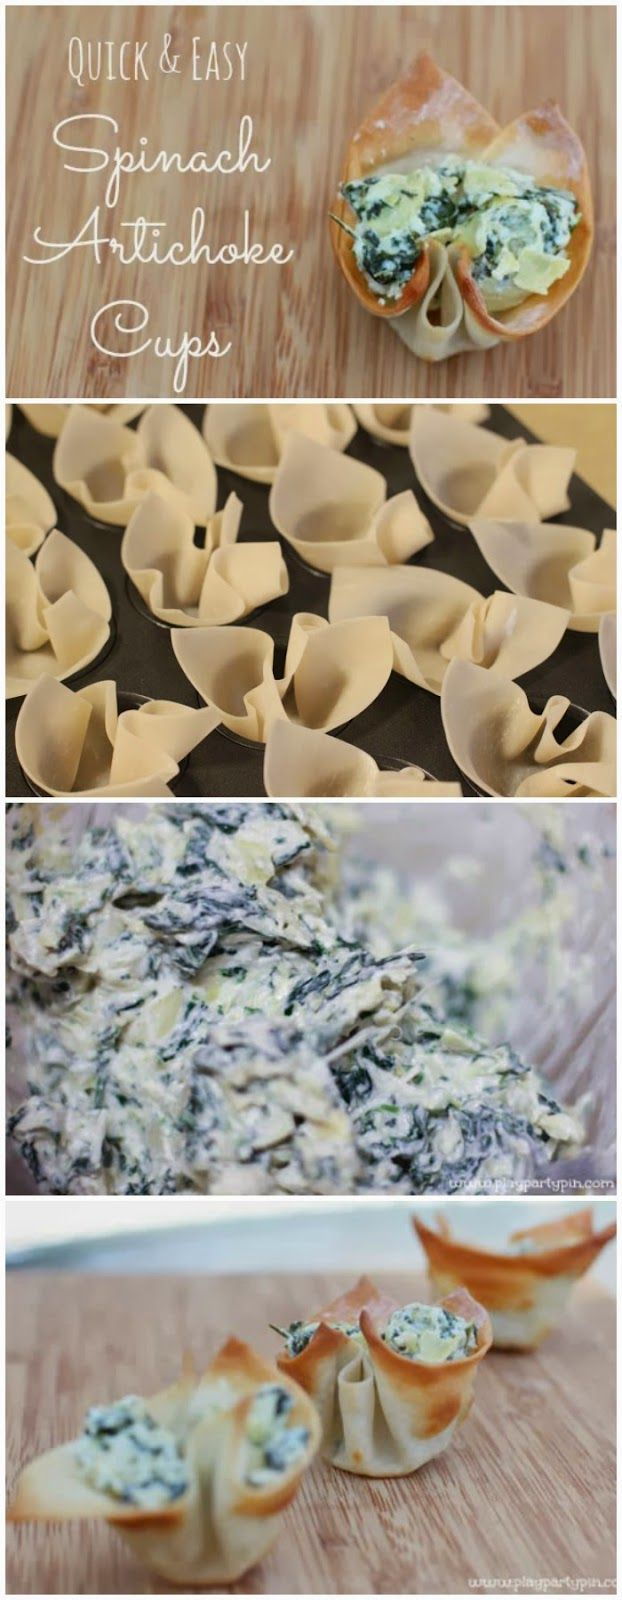 Simple spinach artichoke dip cups made from wonton wrappers, recipe from playpartypin.com